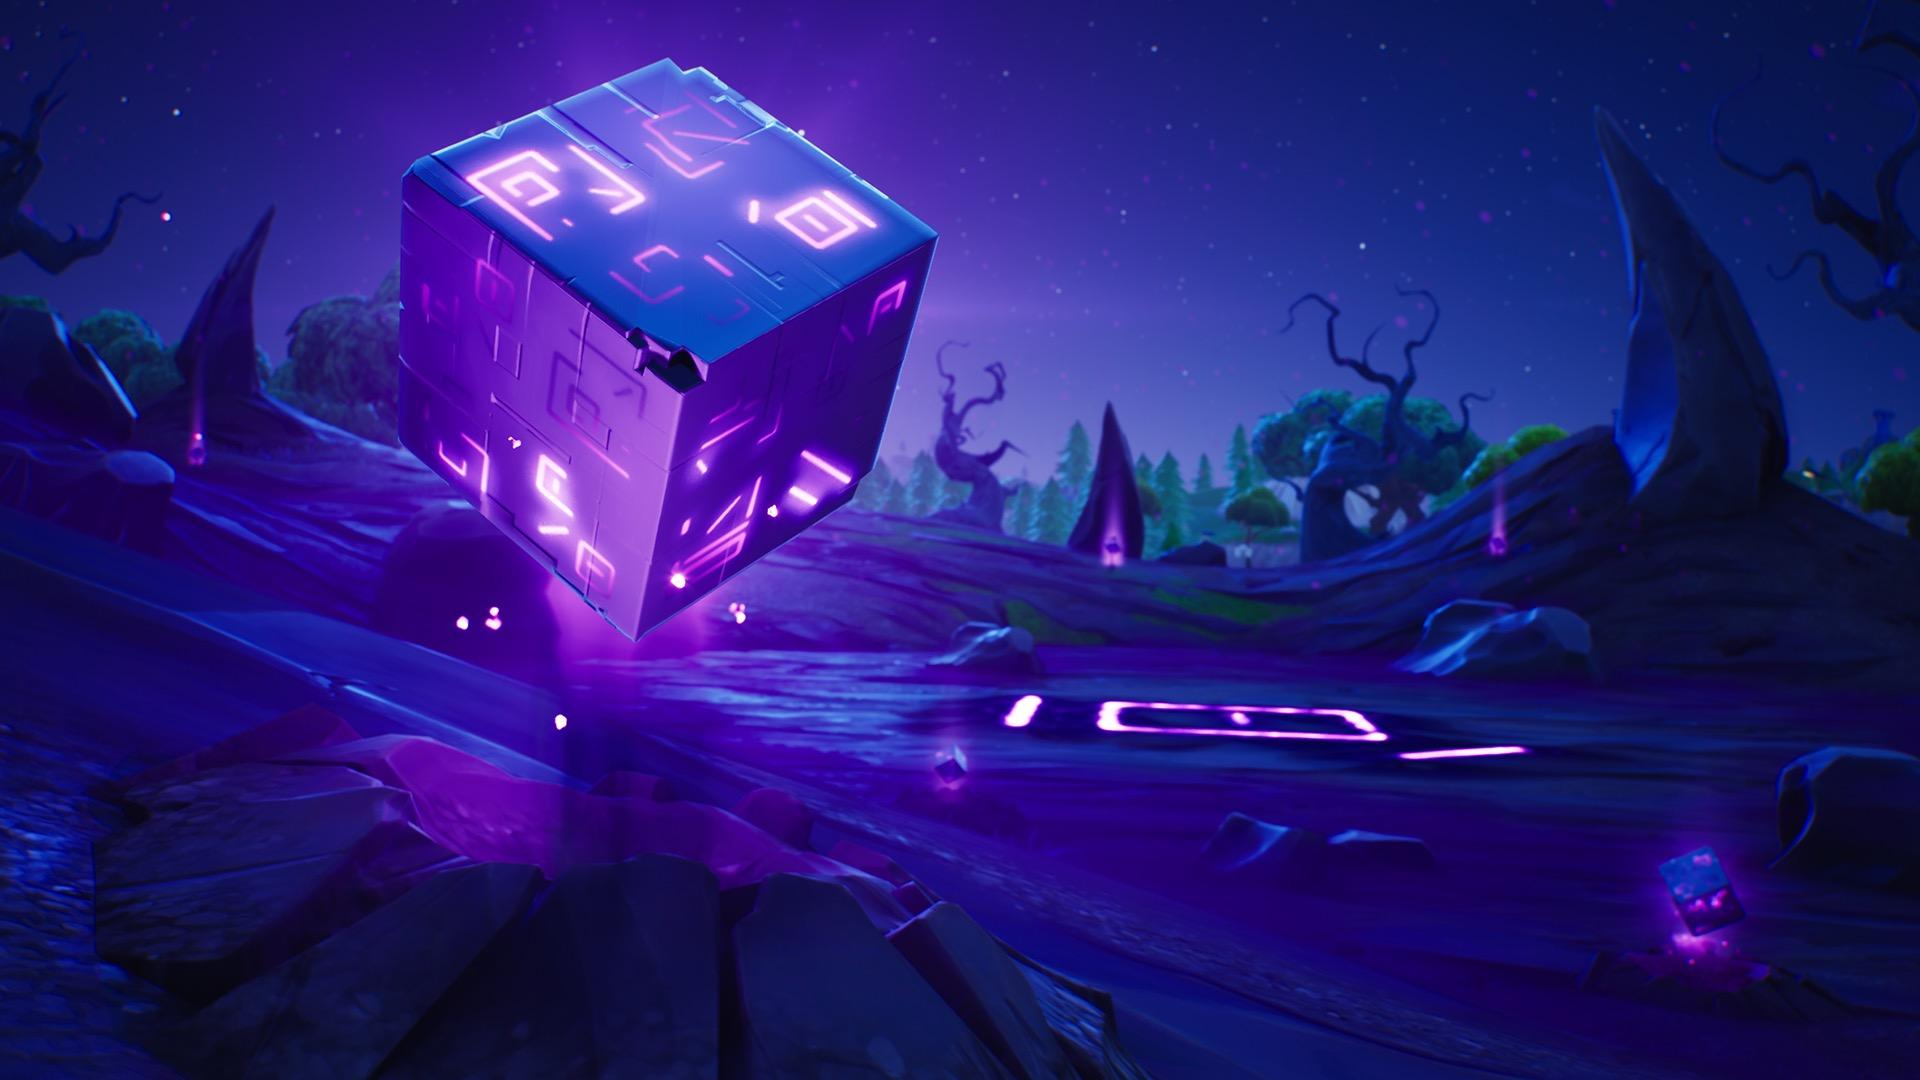 Fortnite Season 6 Launches With Halloween Theme, Pets, Invisibility, More